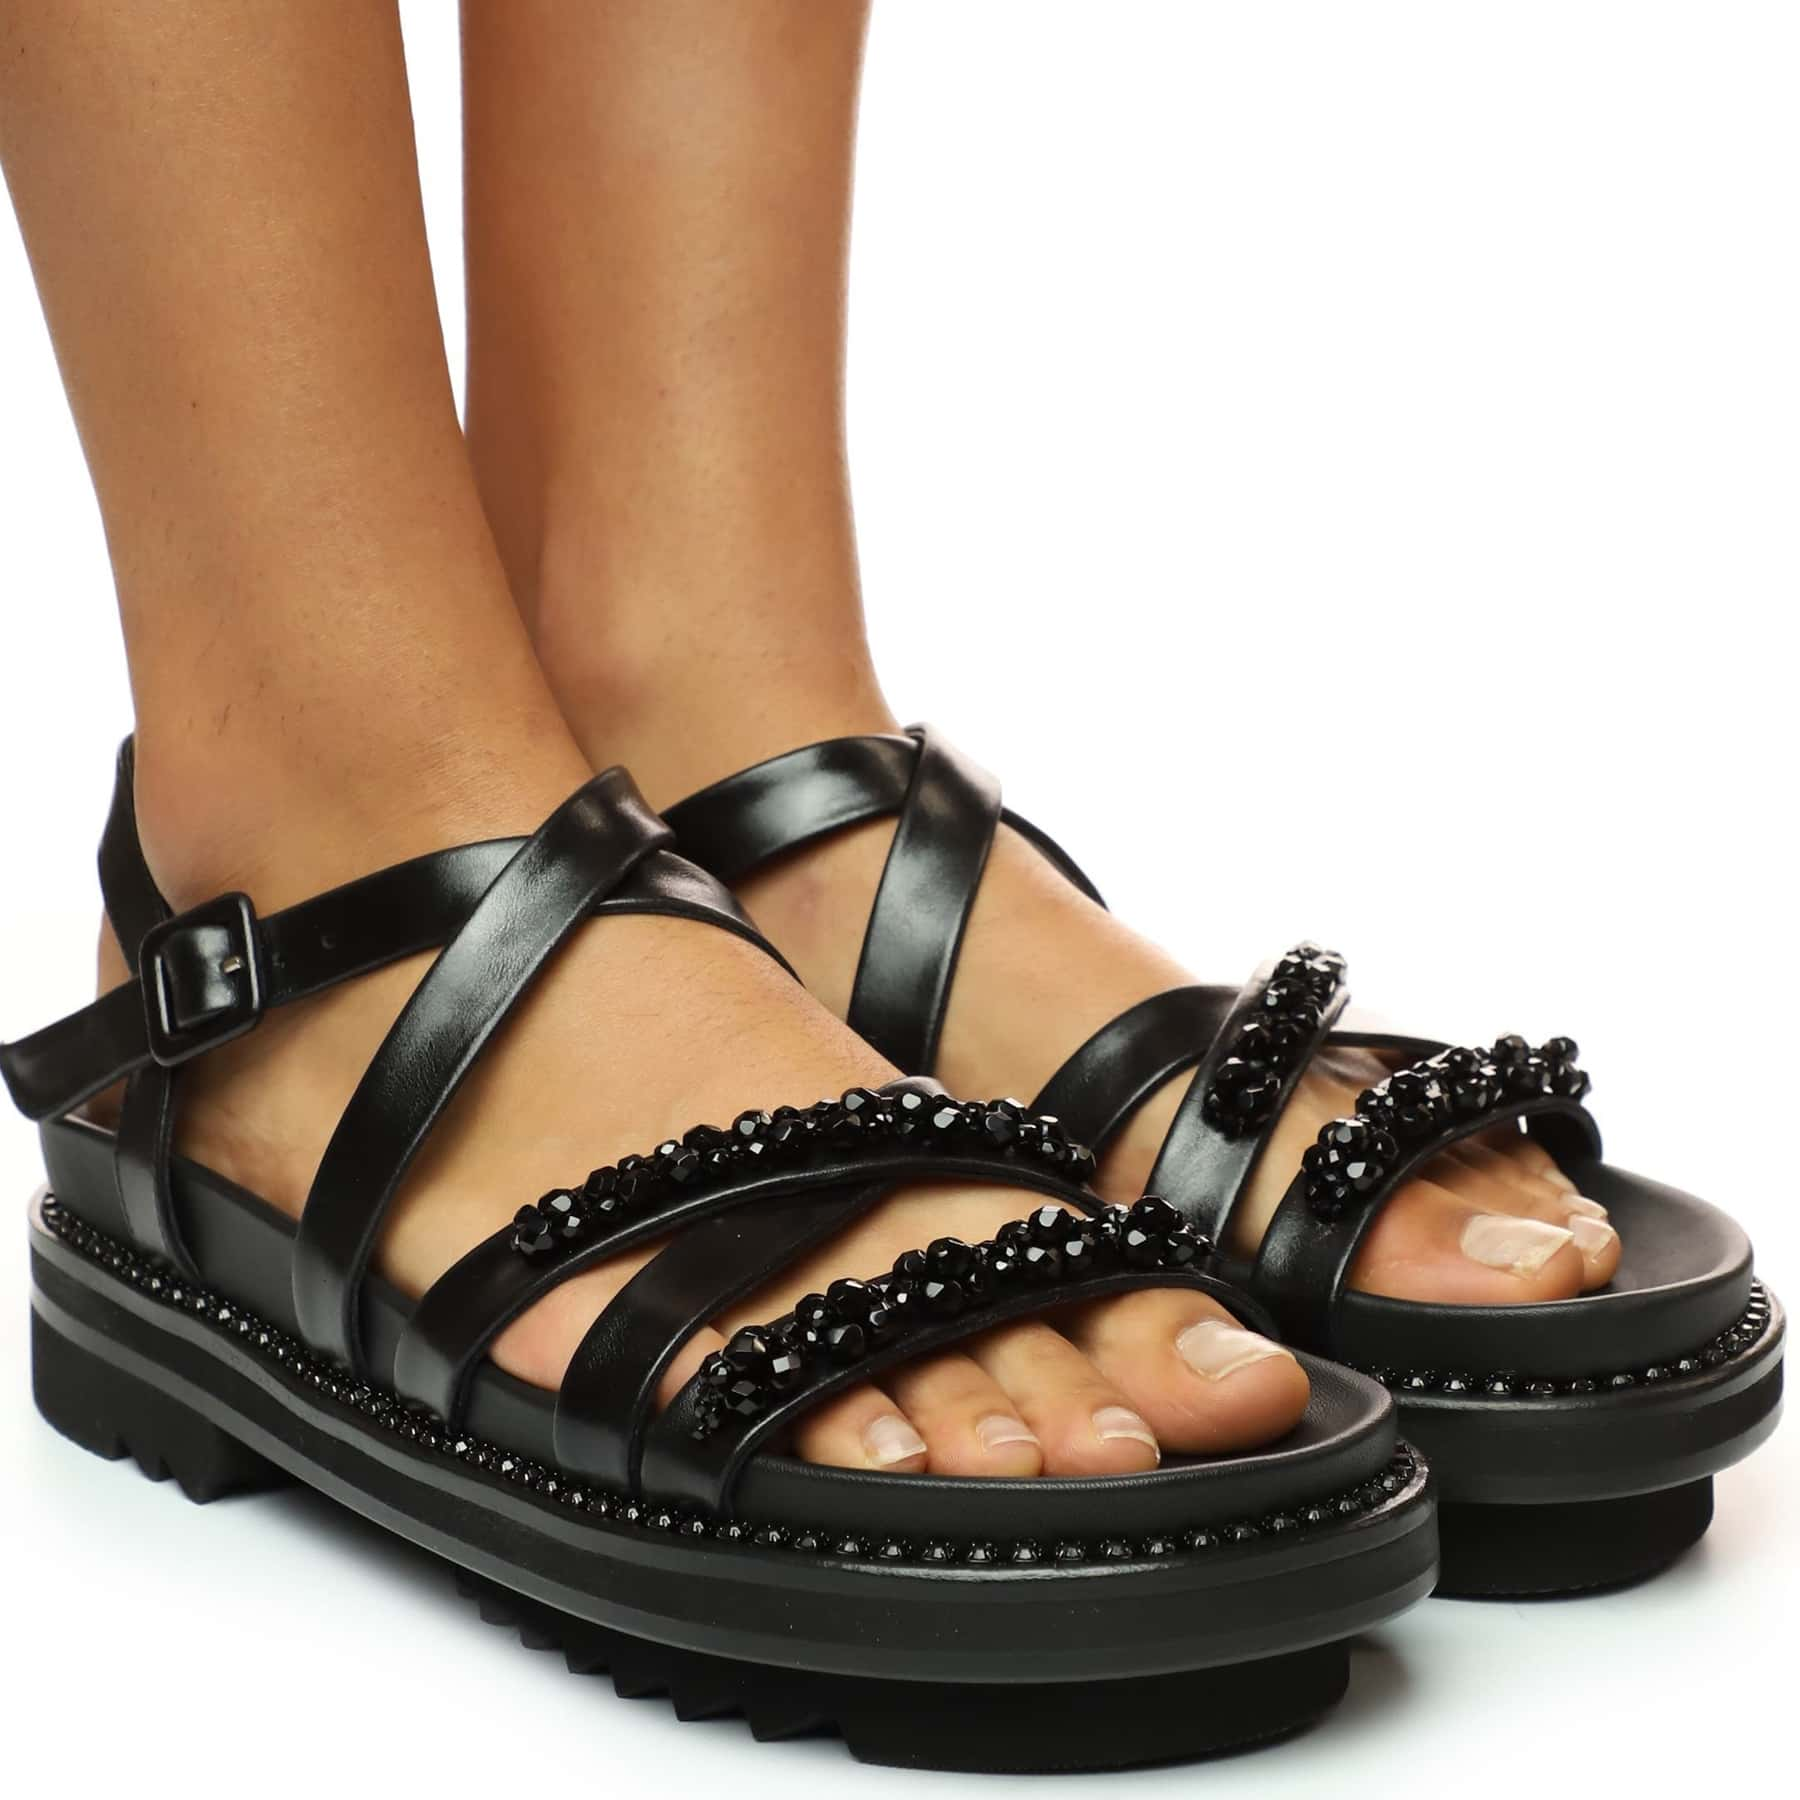 Faceted jet-black beads glam up this crisscross-strap, lug-platform sandal that's part sporty casual and part couture